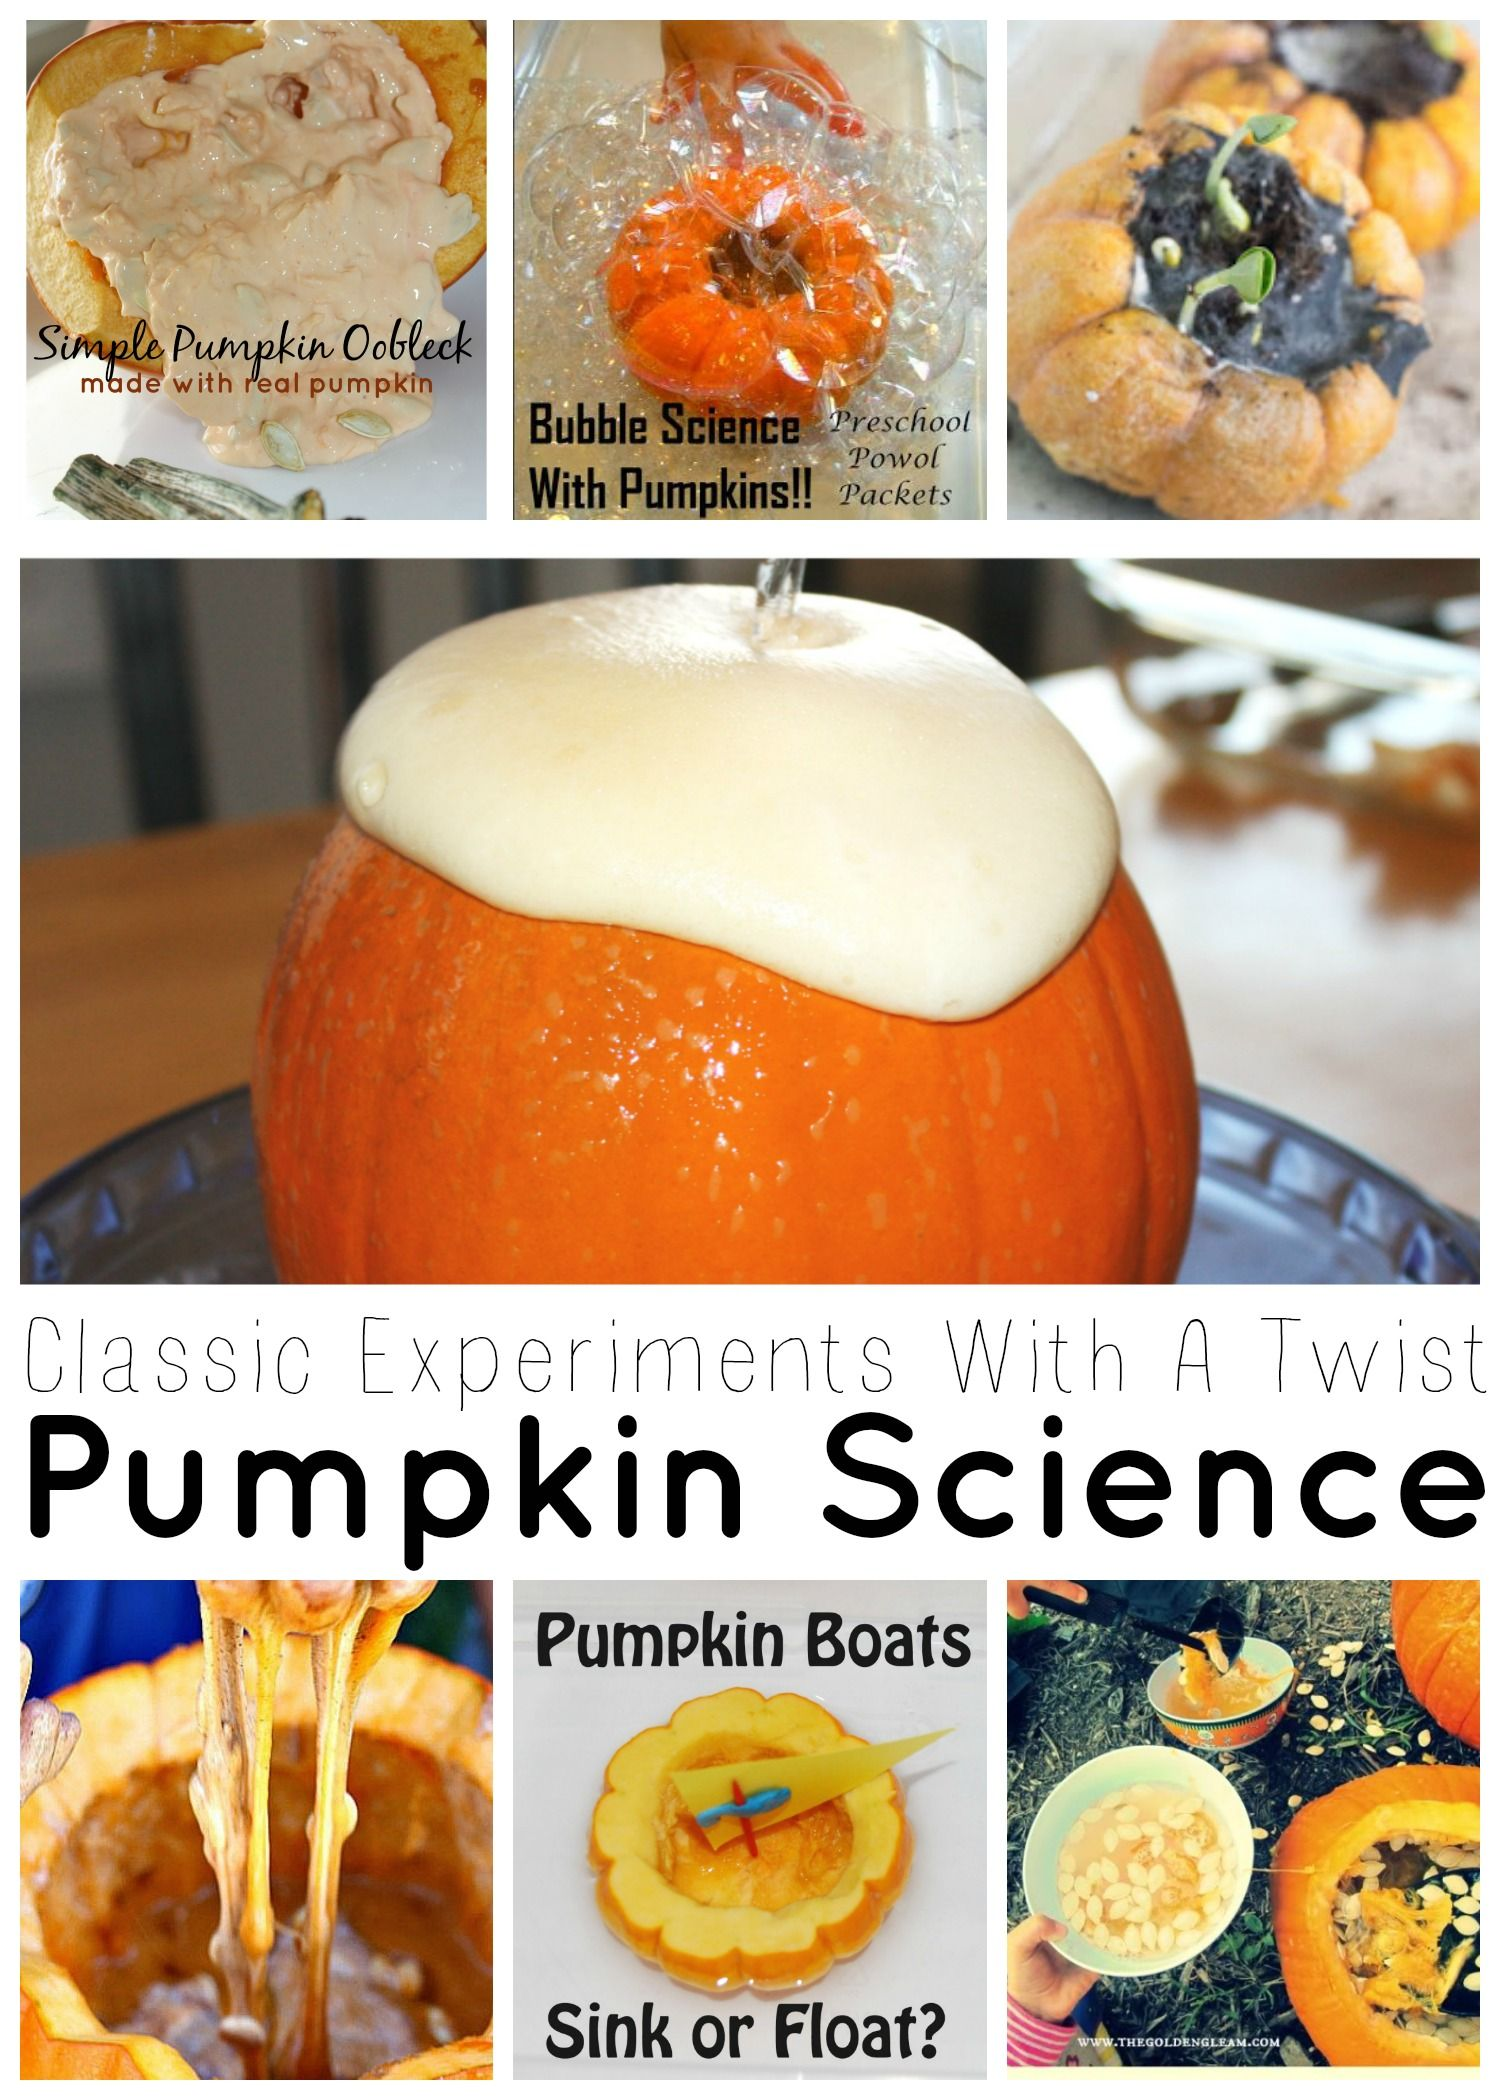 Pumpkin Science Experiments And Activities Classics With A Twist